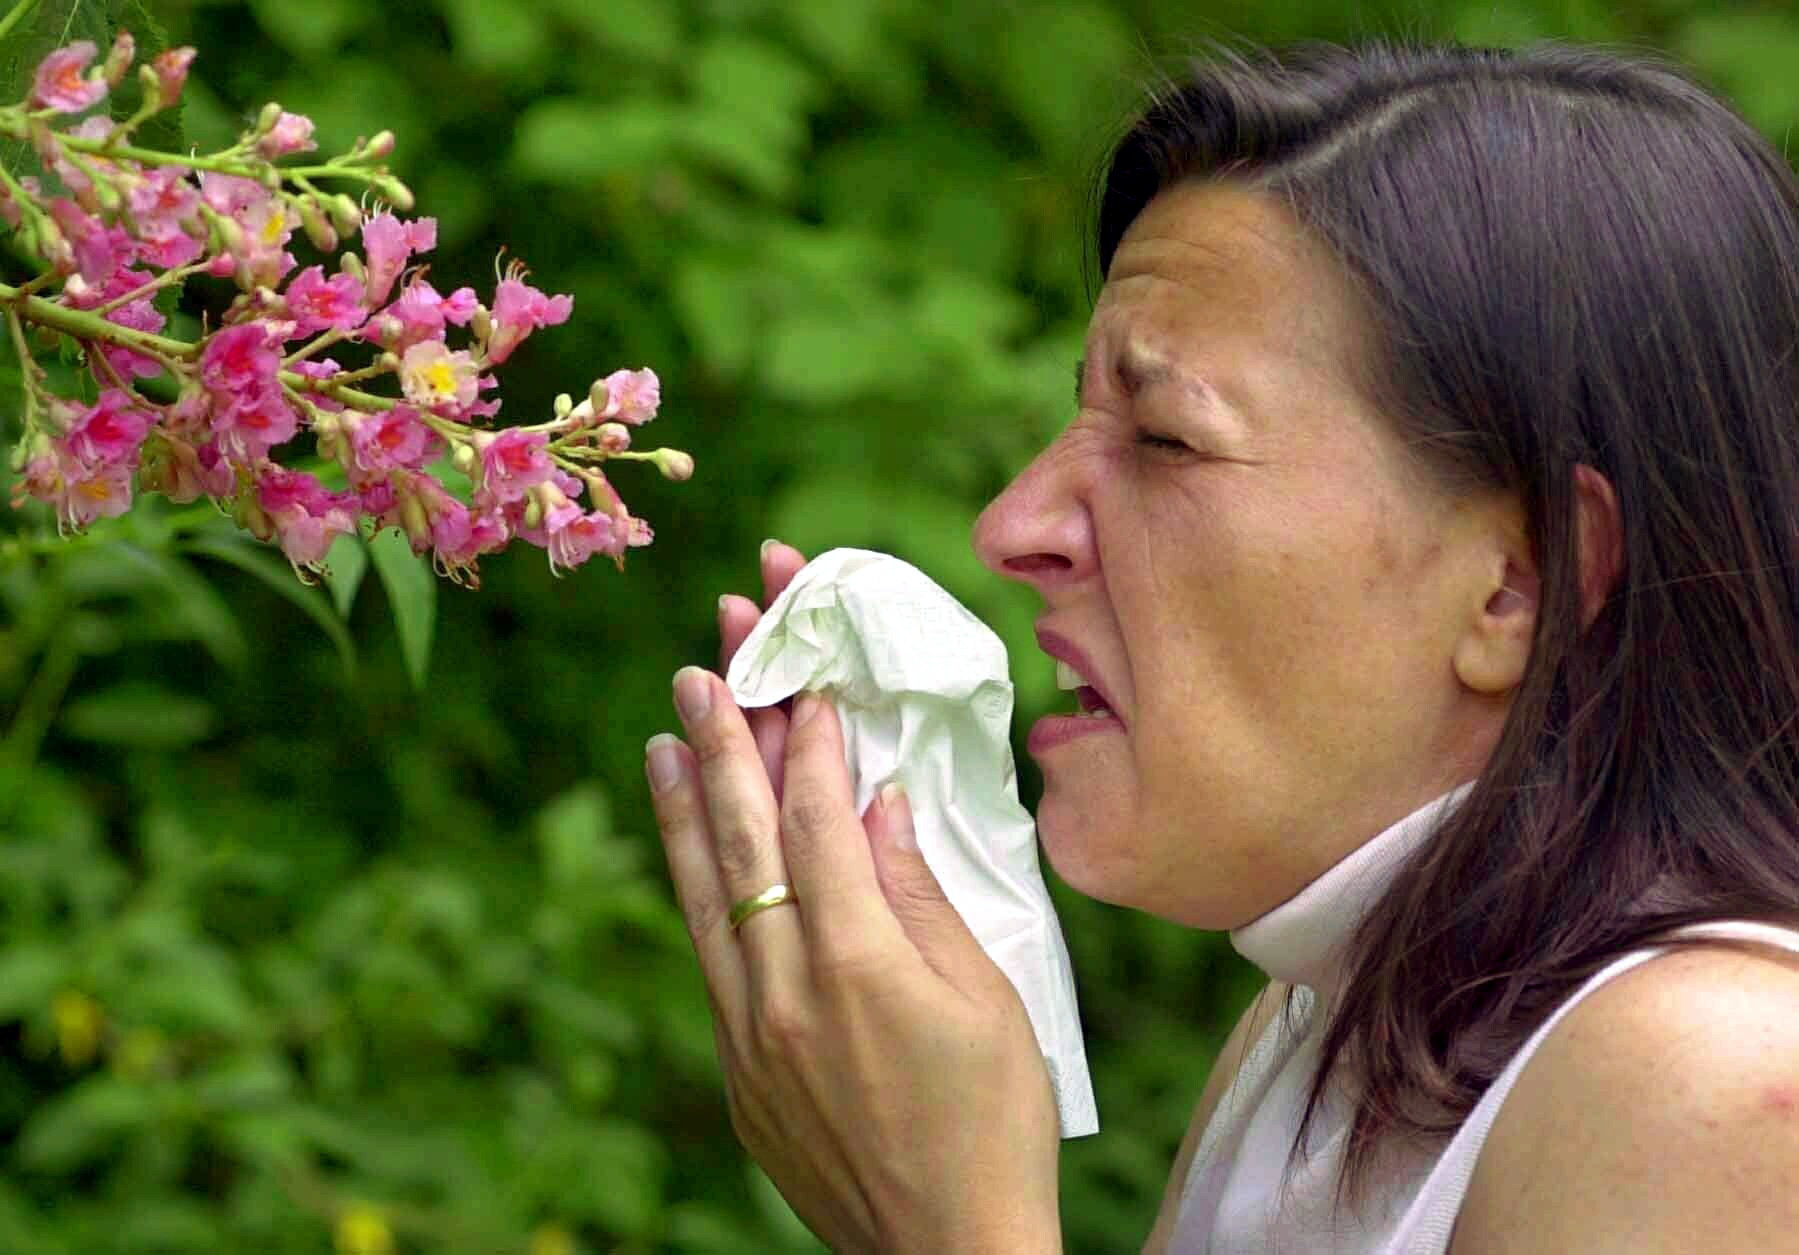 Experts are warning of a 'pollen bomb' set to land on the UK. Credit: PA